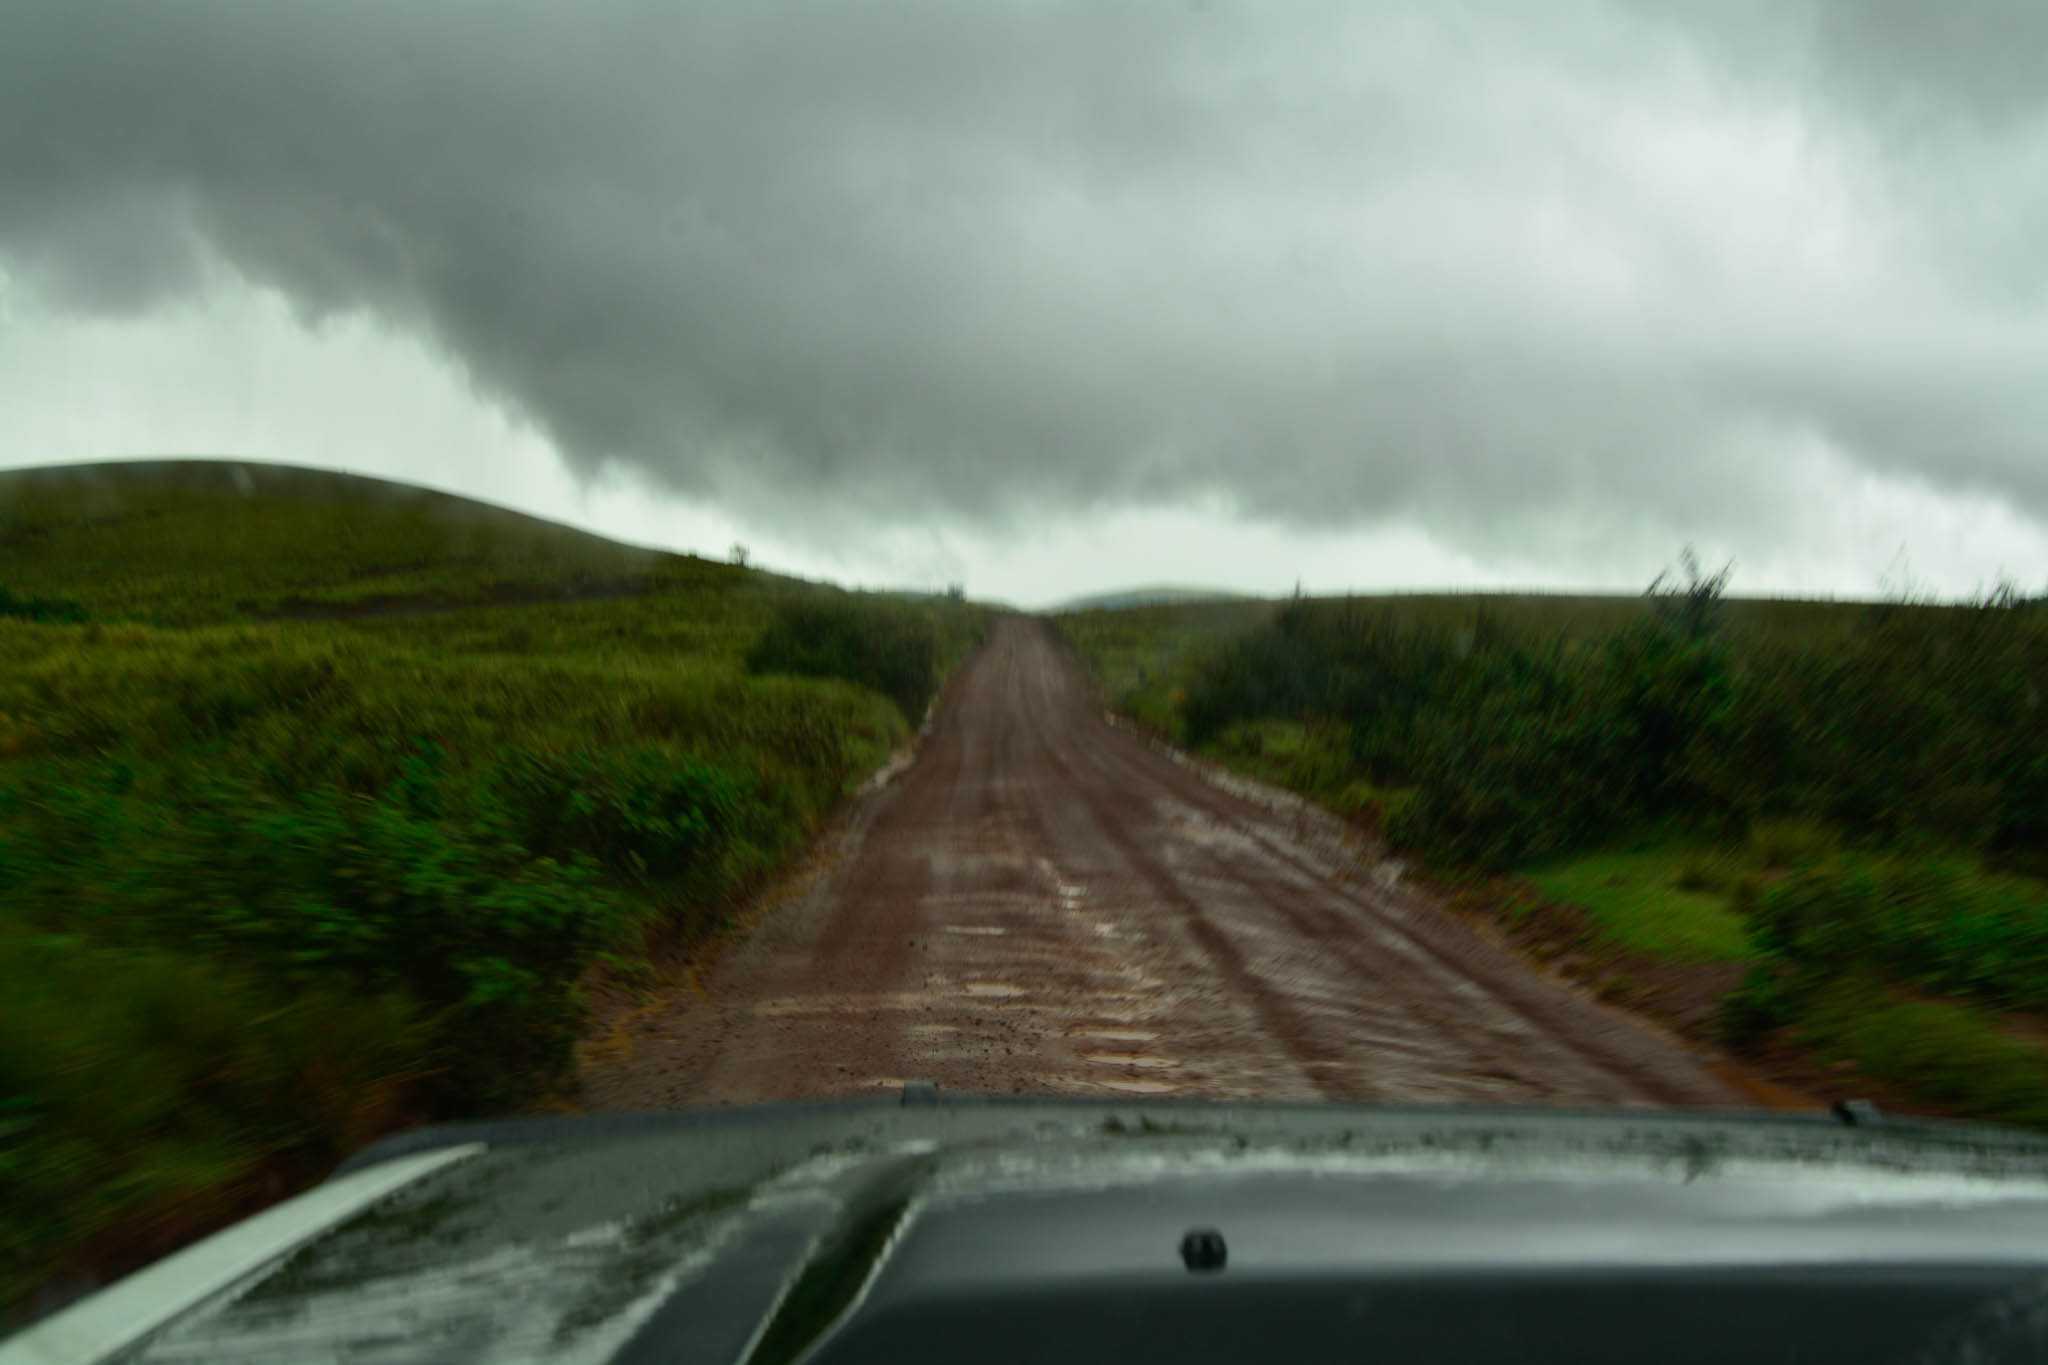 Rain on the way to the Serengeti